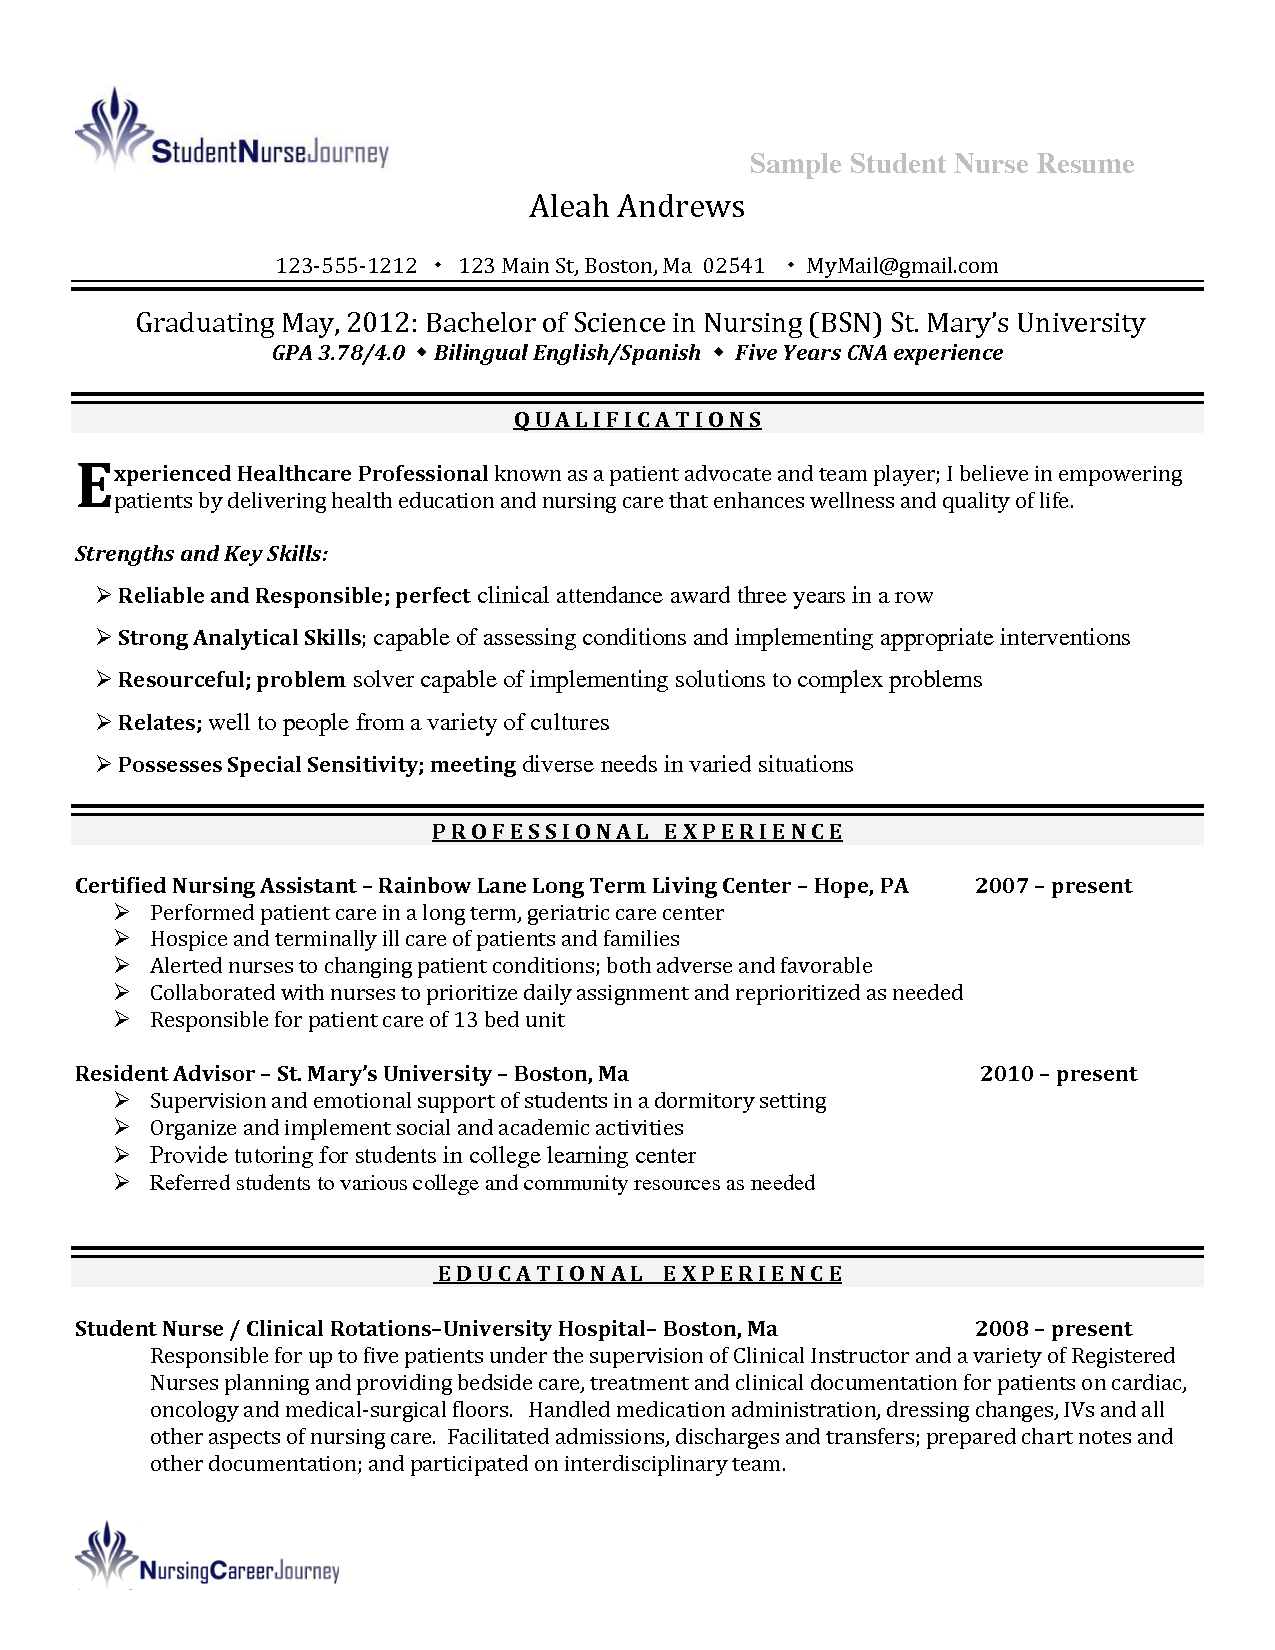 Resume For Nurses Clinical Experience On Nursing Resume Google Search